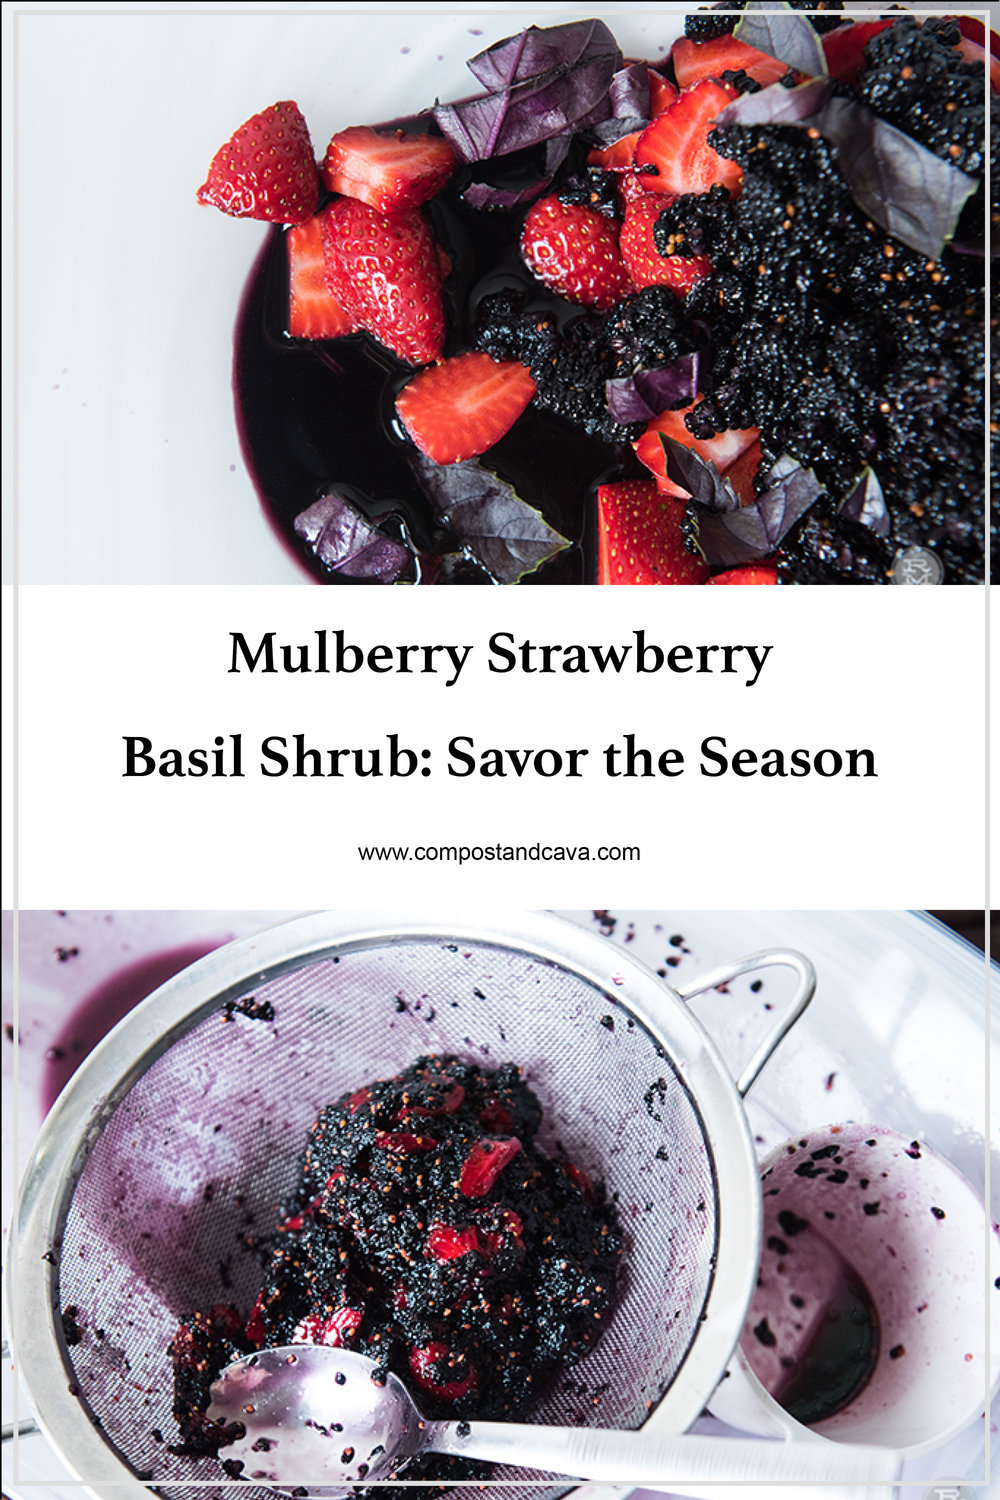 Mulberry Strawberry Basil Shrub- Savor the Season